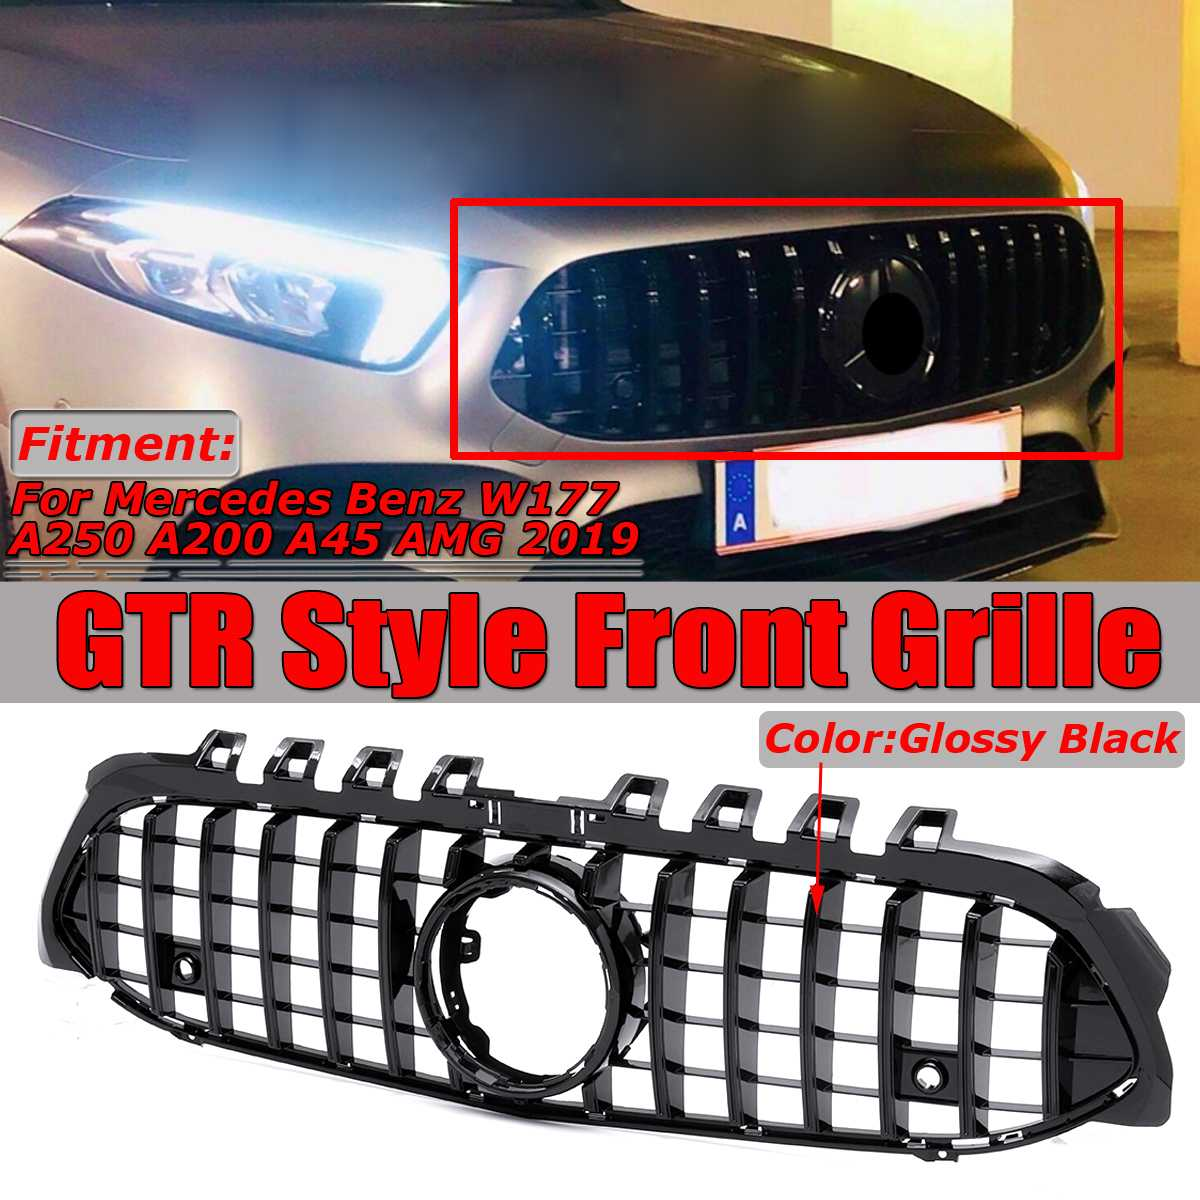 GZYF Glossy Black Exterior Side Rearview Mirror Cover Cap Compatible With Benz A-Class W177 2019 2020